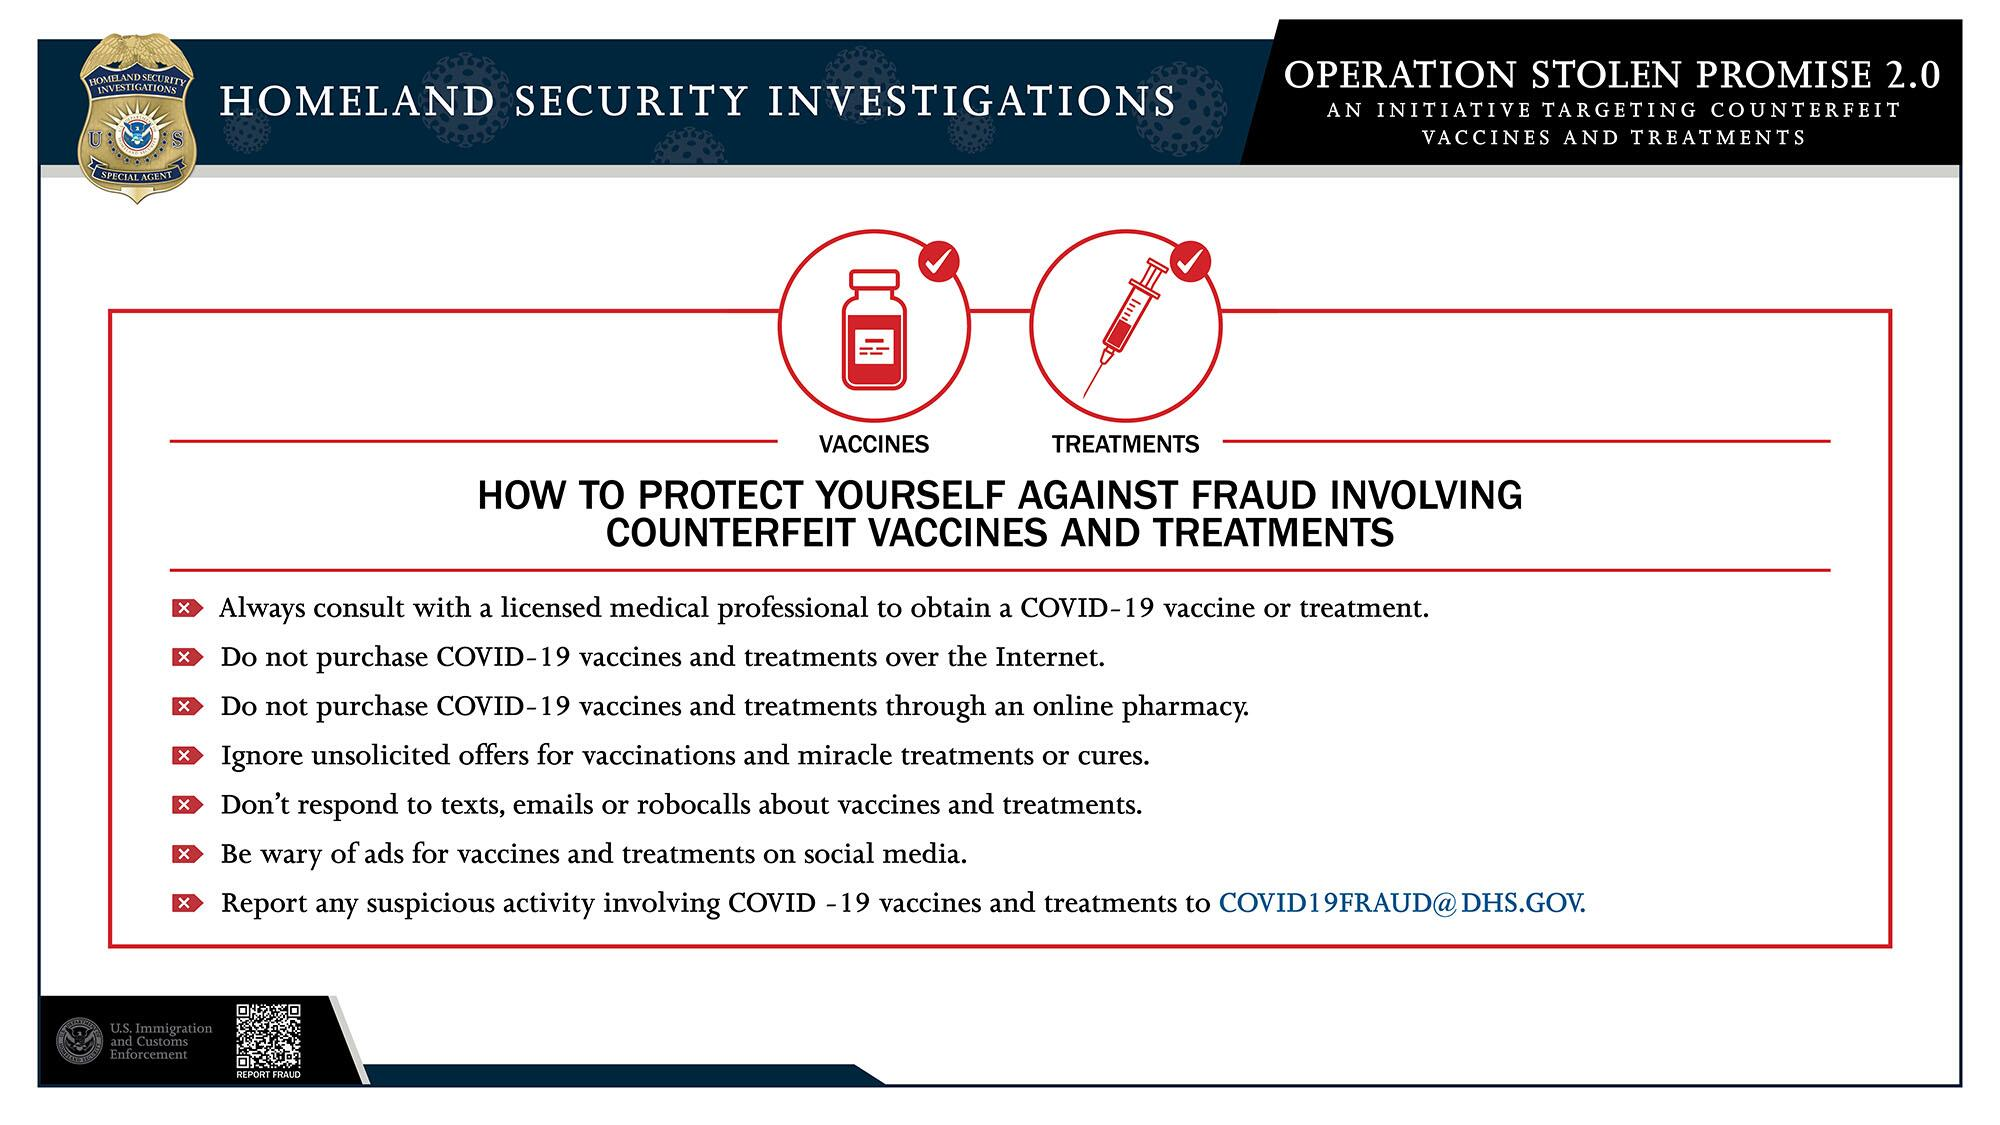 ICE warning on fake COVID-19 vaccines, counterfeit PPE, bogus preventive medical treatments